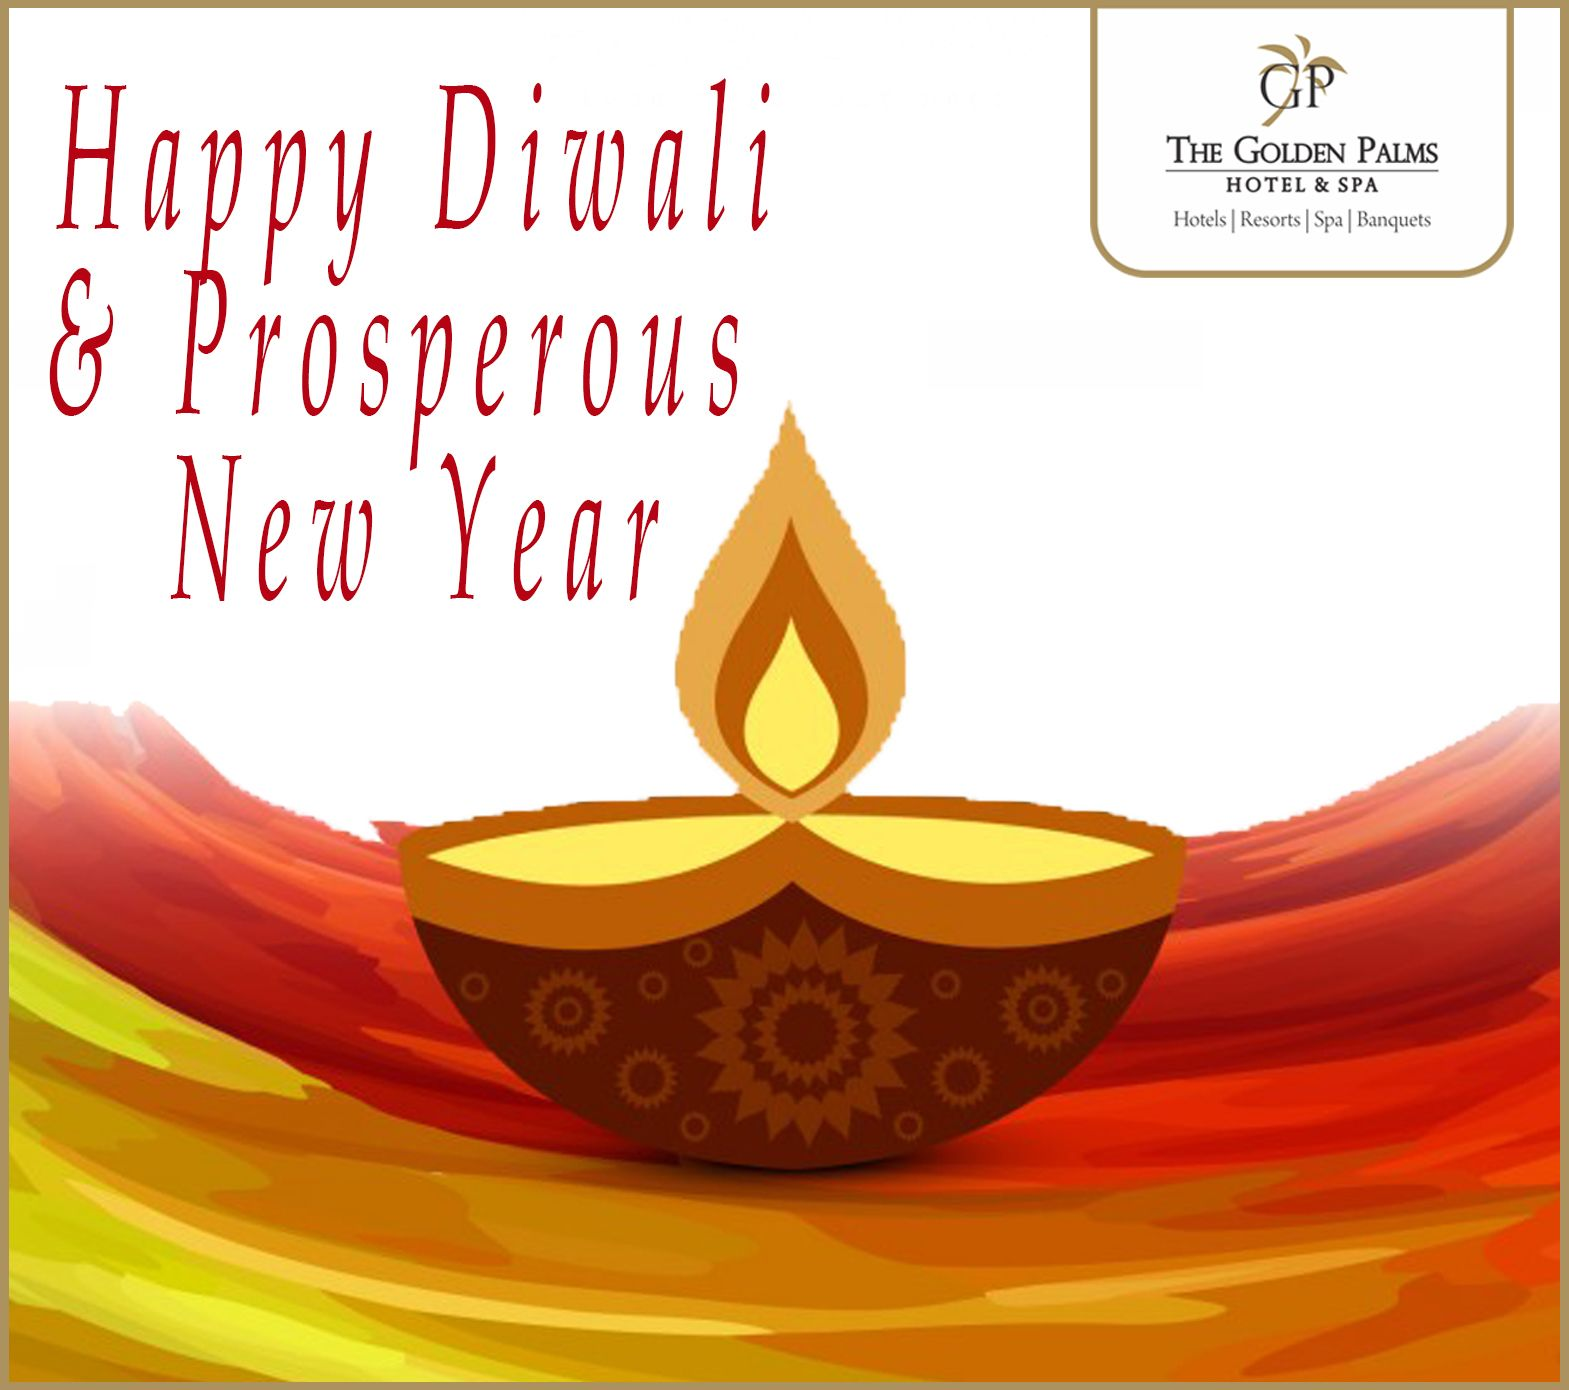 Golden Palms Hotel Spa Wishes You A Happy Diwali And Prosperous